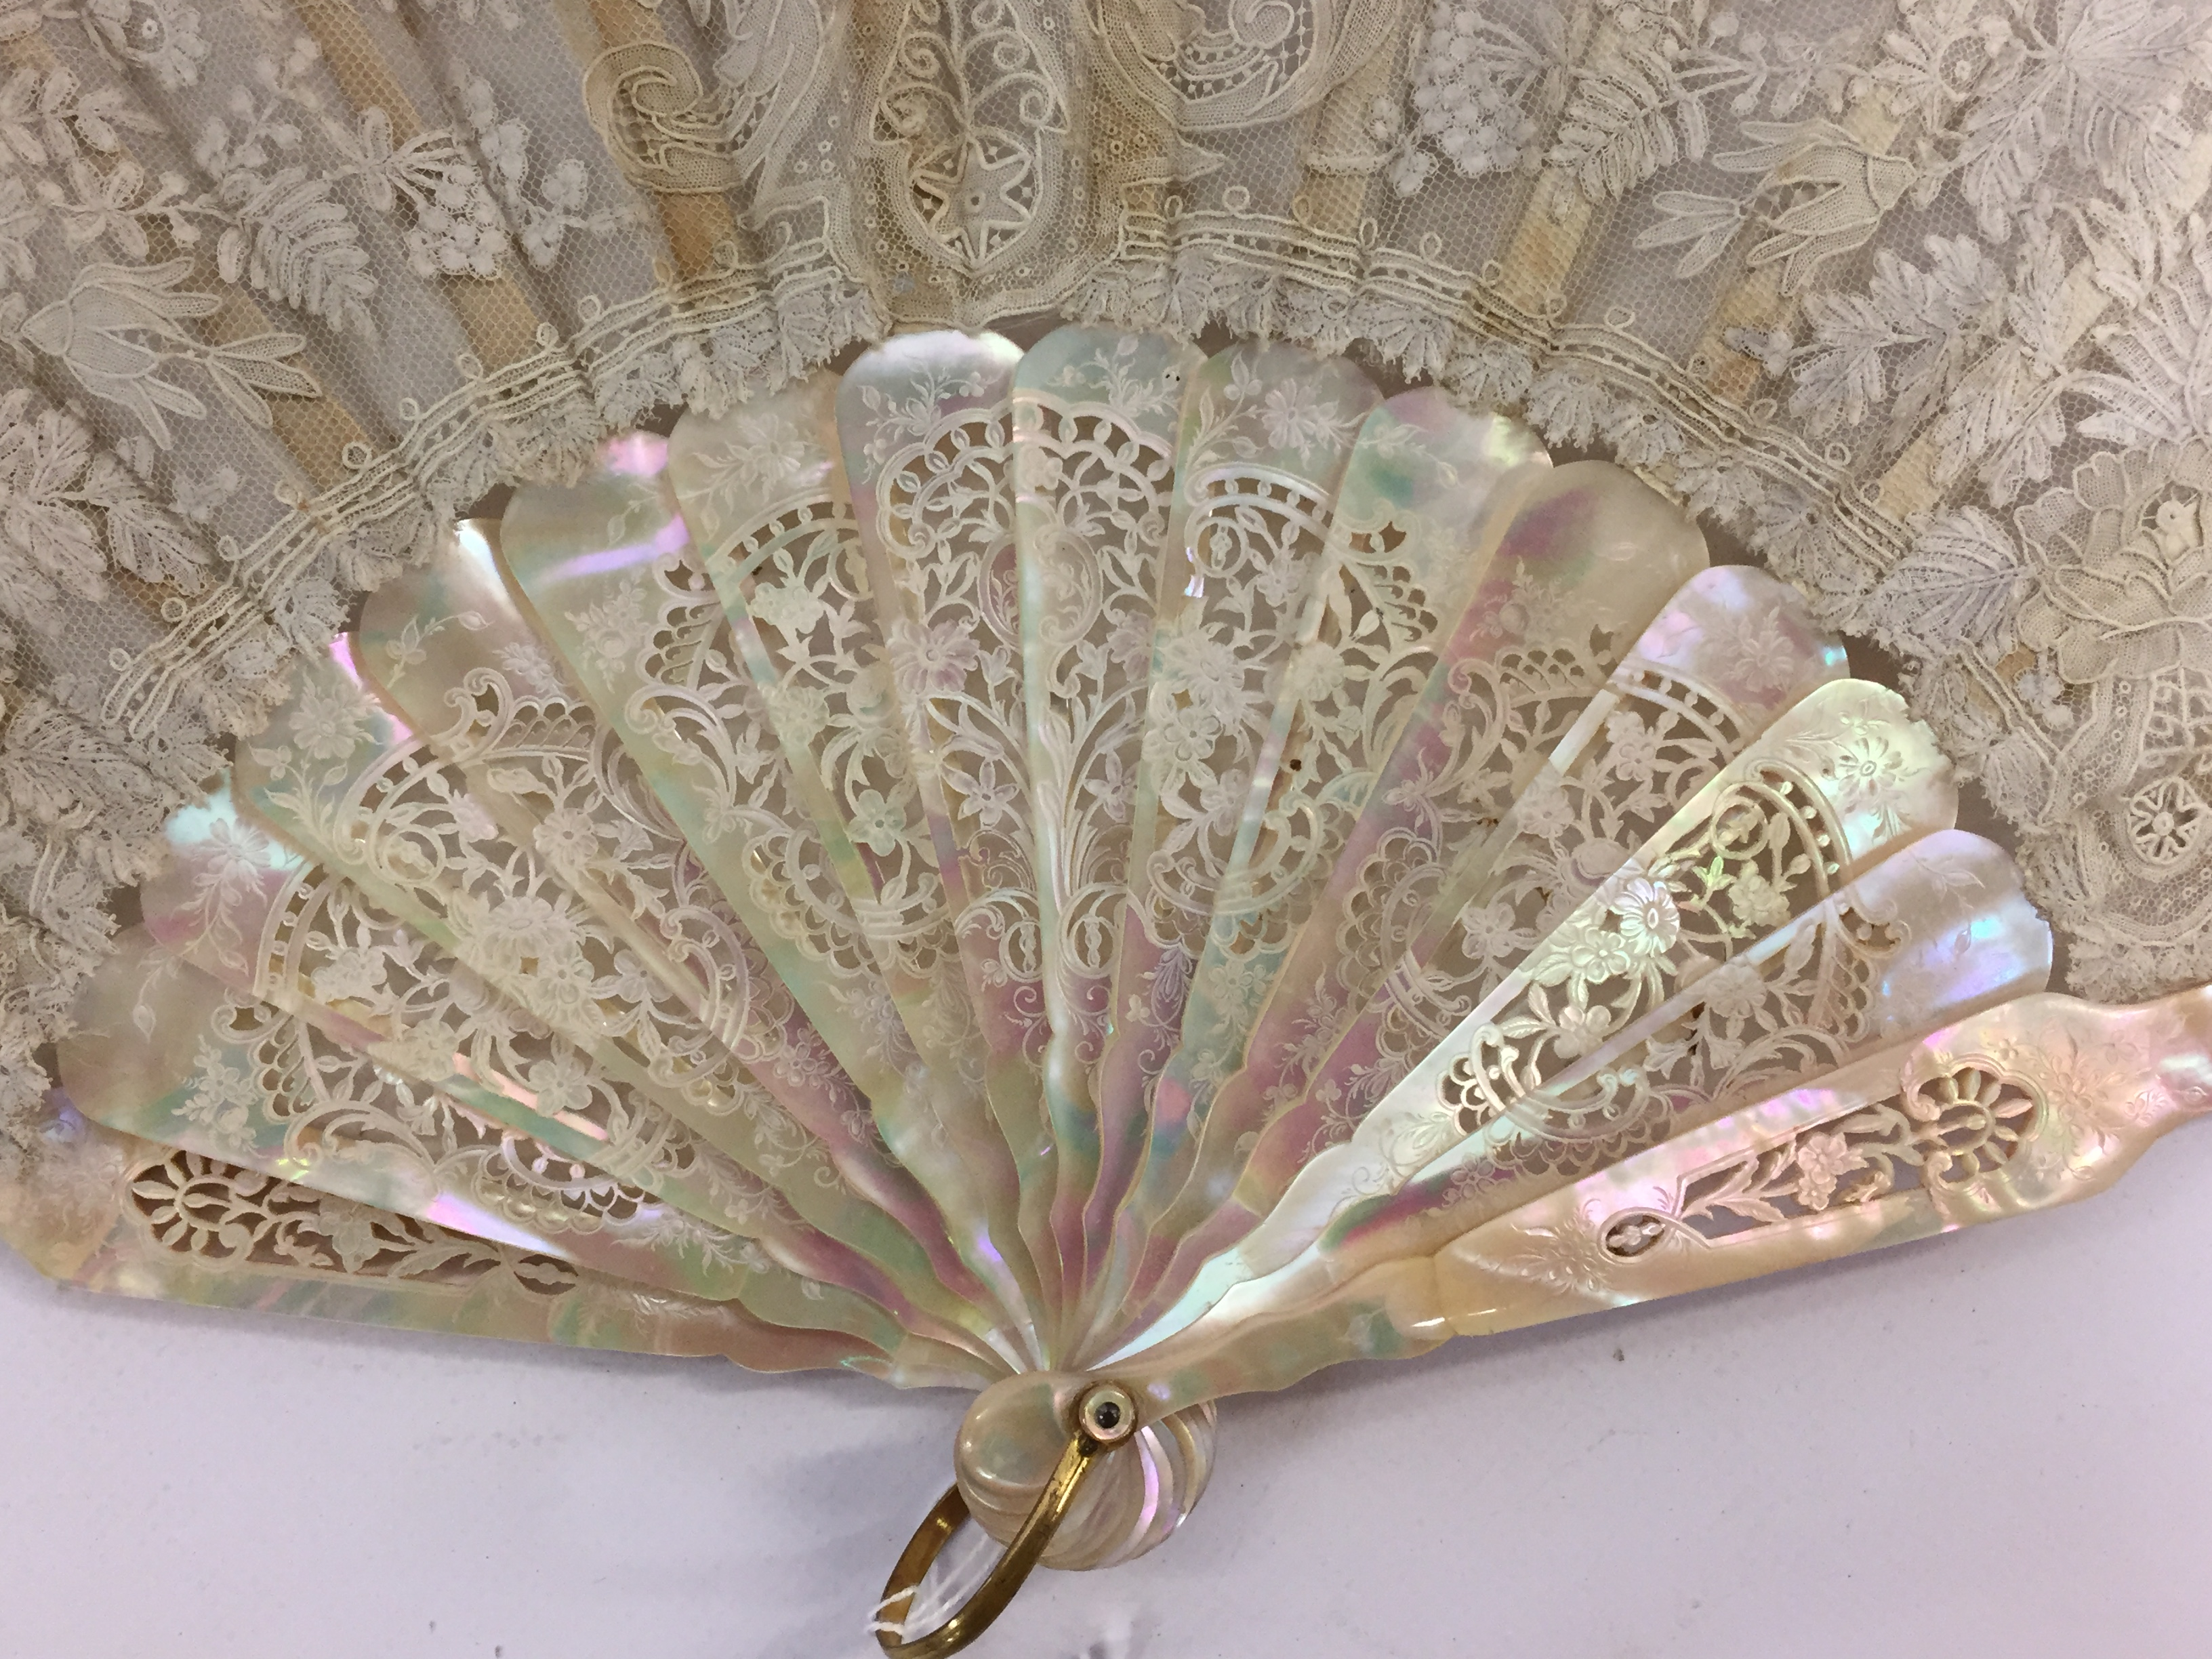 Lot 100 - A C19TH FRENCH MOTHER OF PEARL AND SATIN FAN WITH LACE , PRESENTED IN CARDBOARD BOX,